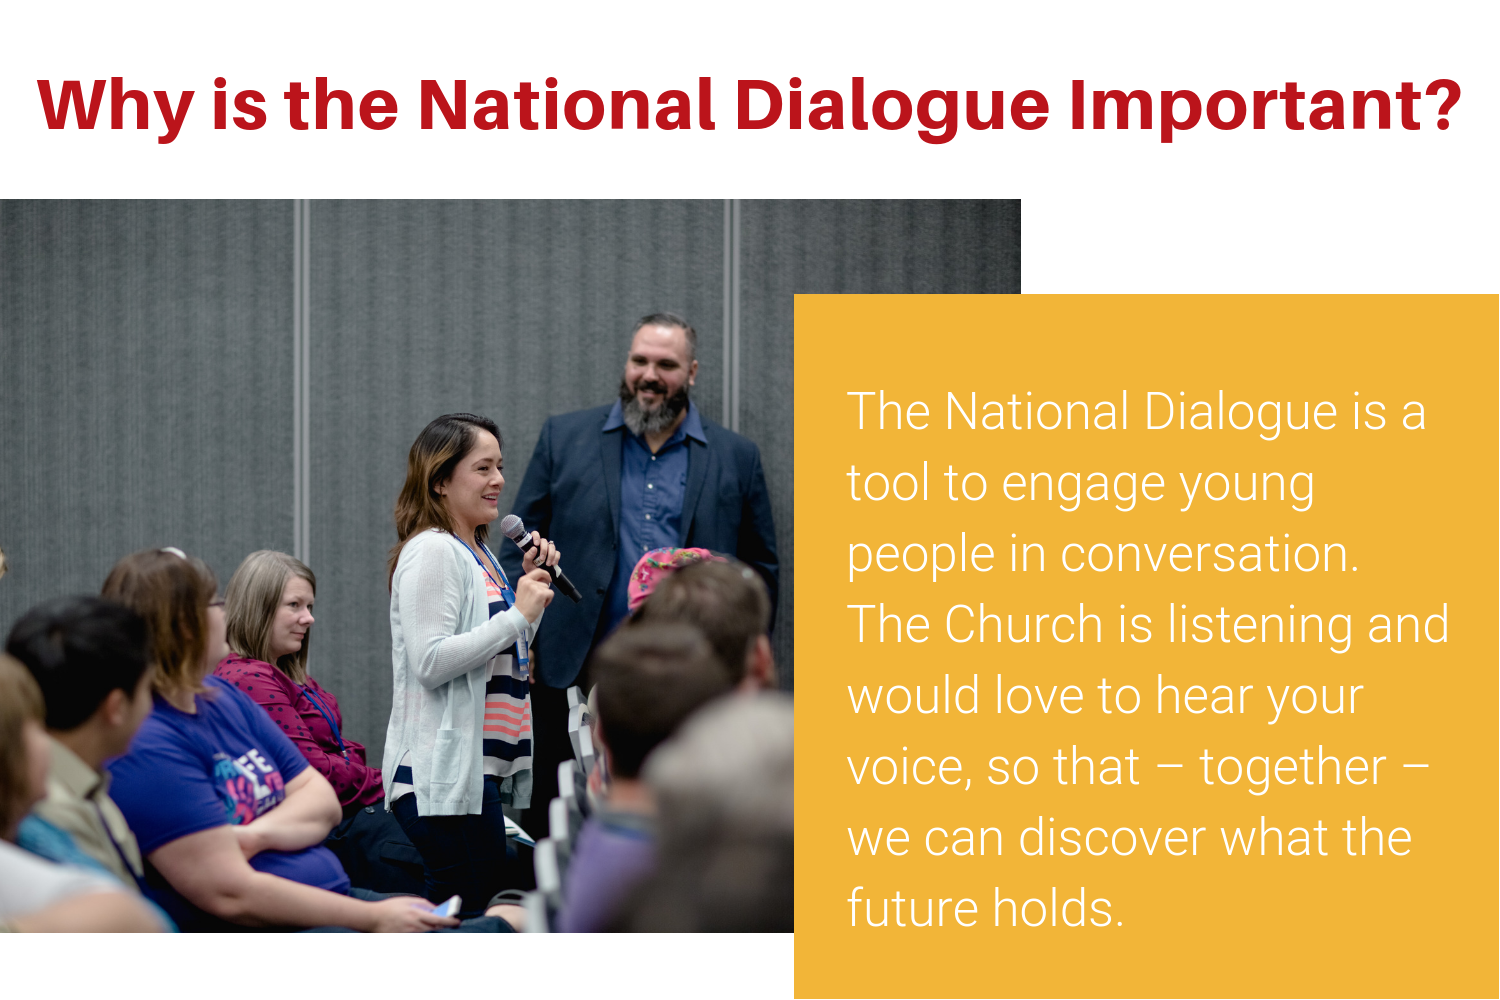 The National Dialogue is a tool to engage young people in conversation. The Church is listening and would love to hear your voice, so that – together – we can discover what the future holds. (2).png